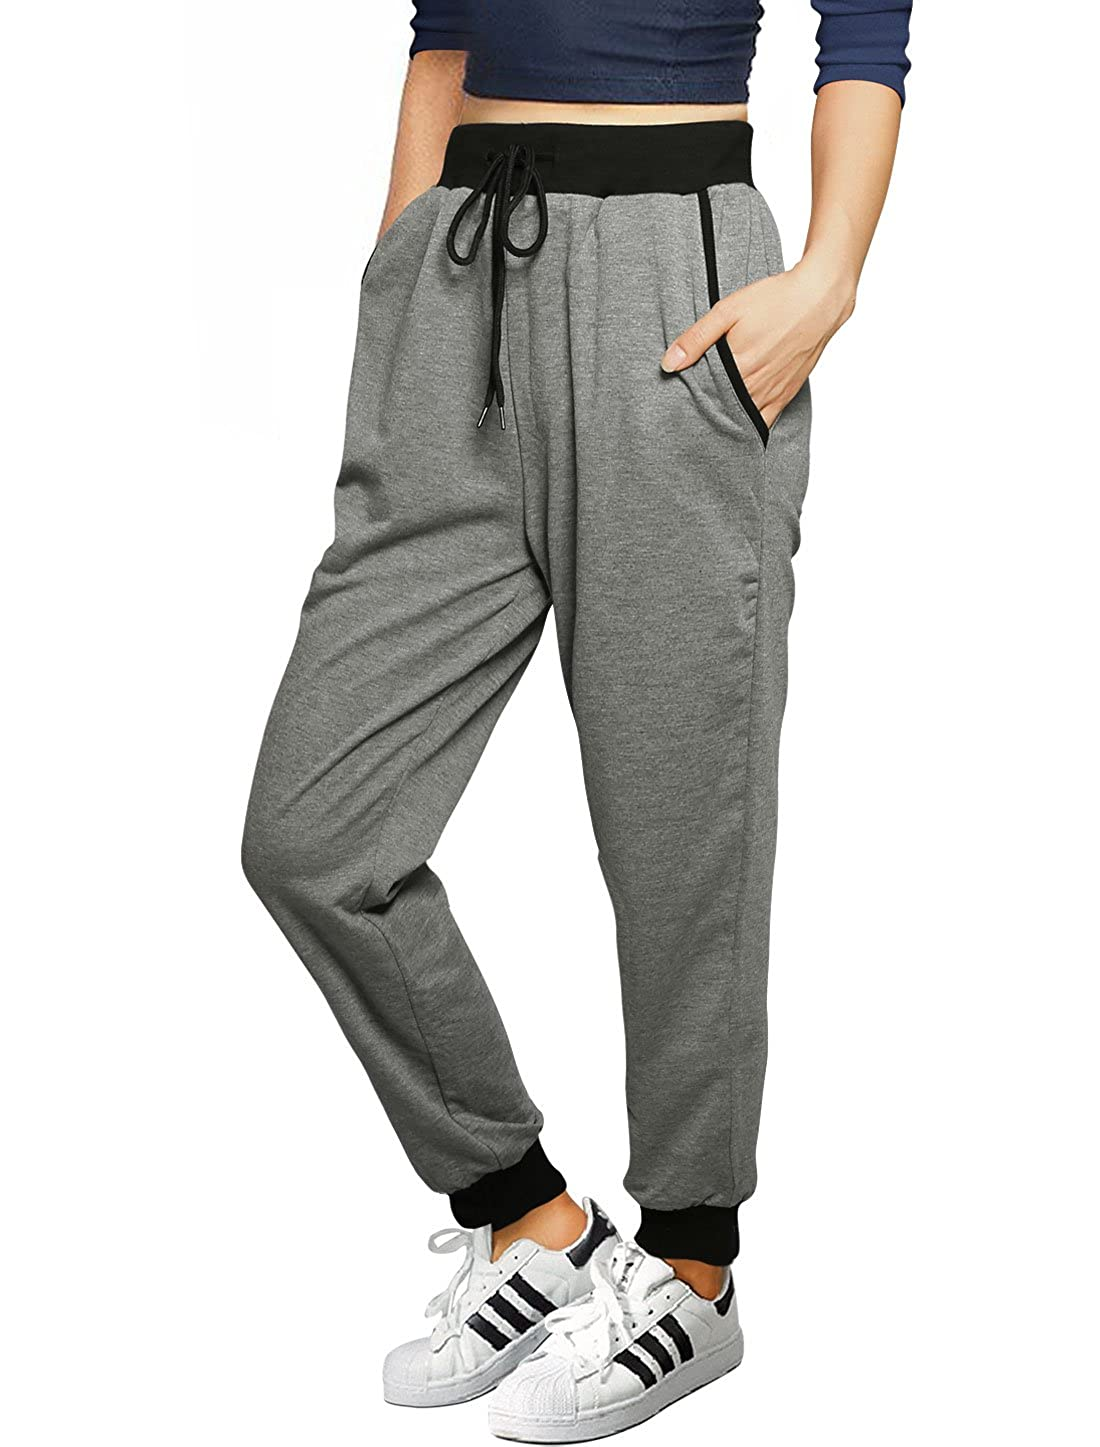 Allegra K Women's Back to School Drawstring French Terry Jogger Pants g15081000ux0037